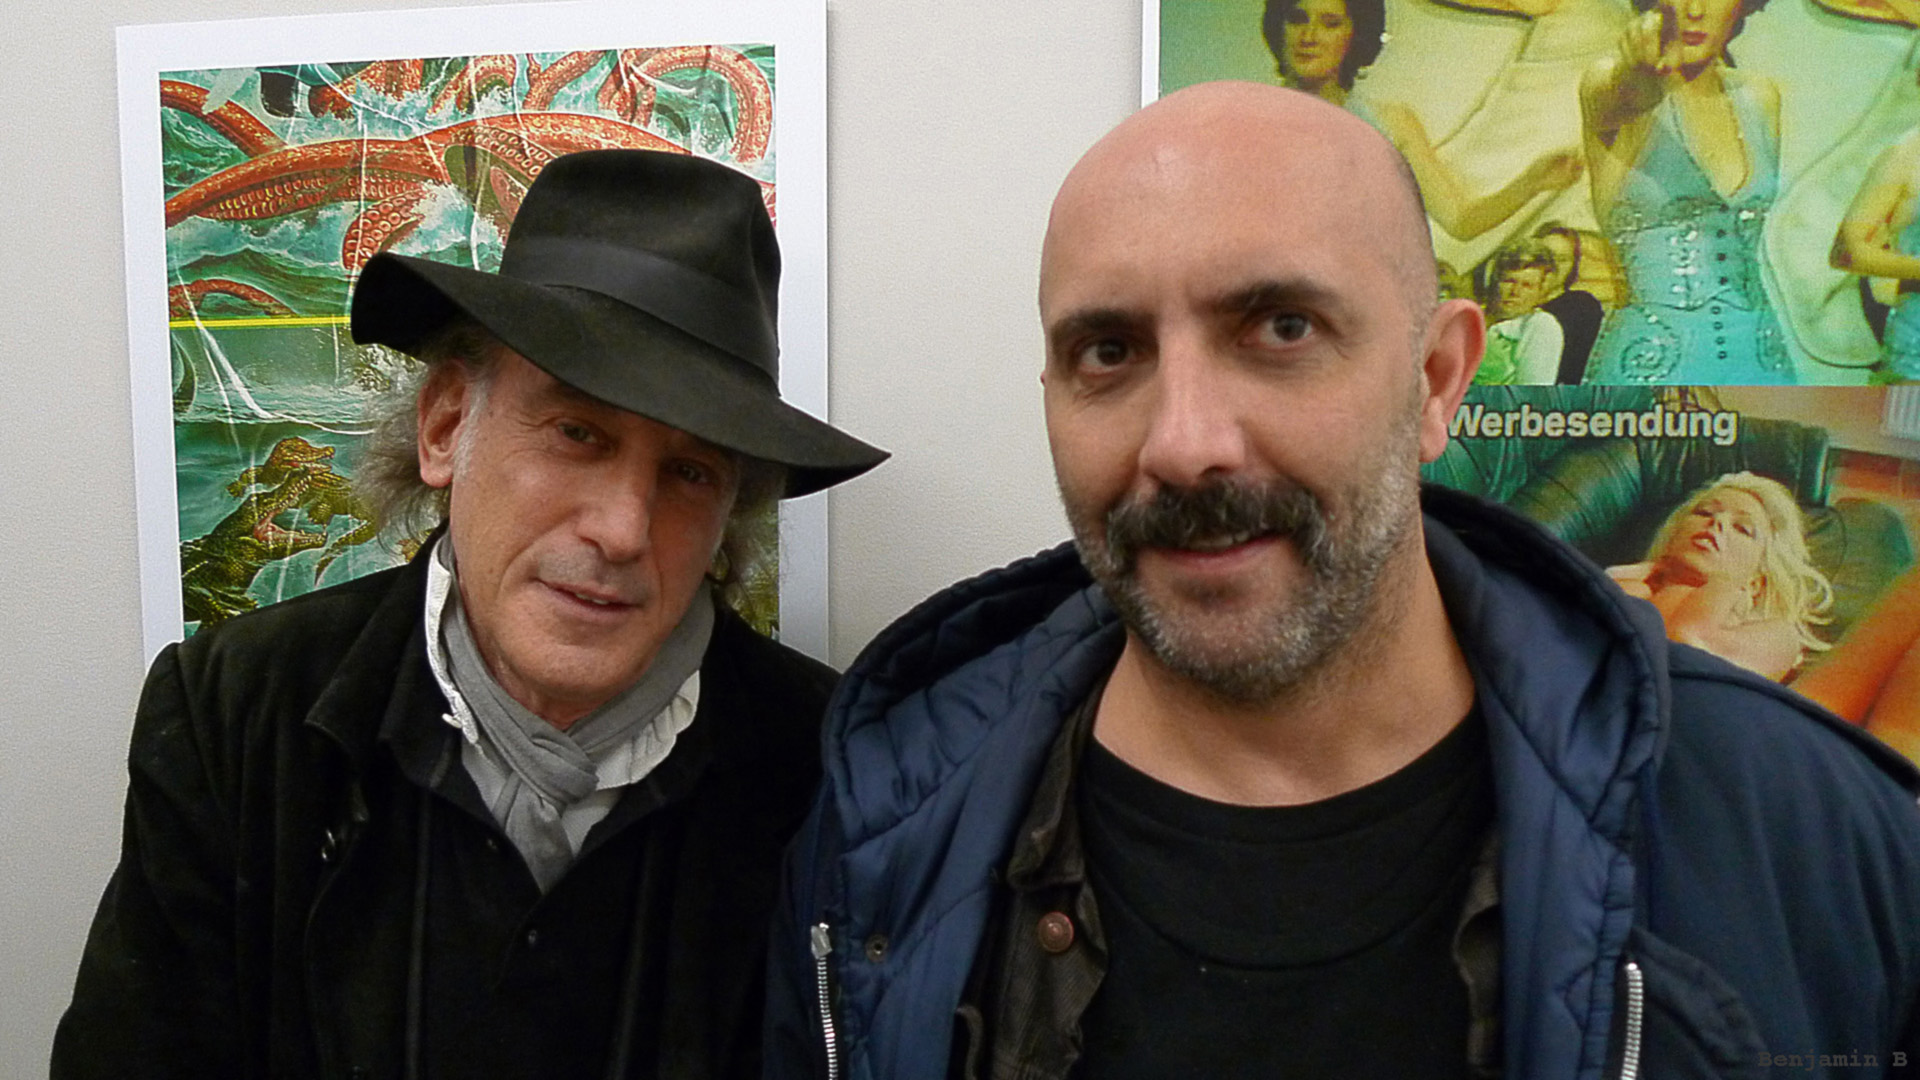 Ed Lachman and Gaspar Noe - Paris 2013 -photo by Benjamin B-